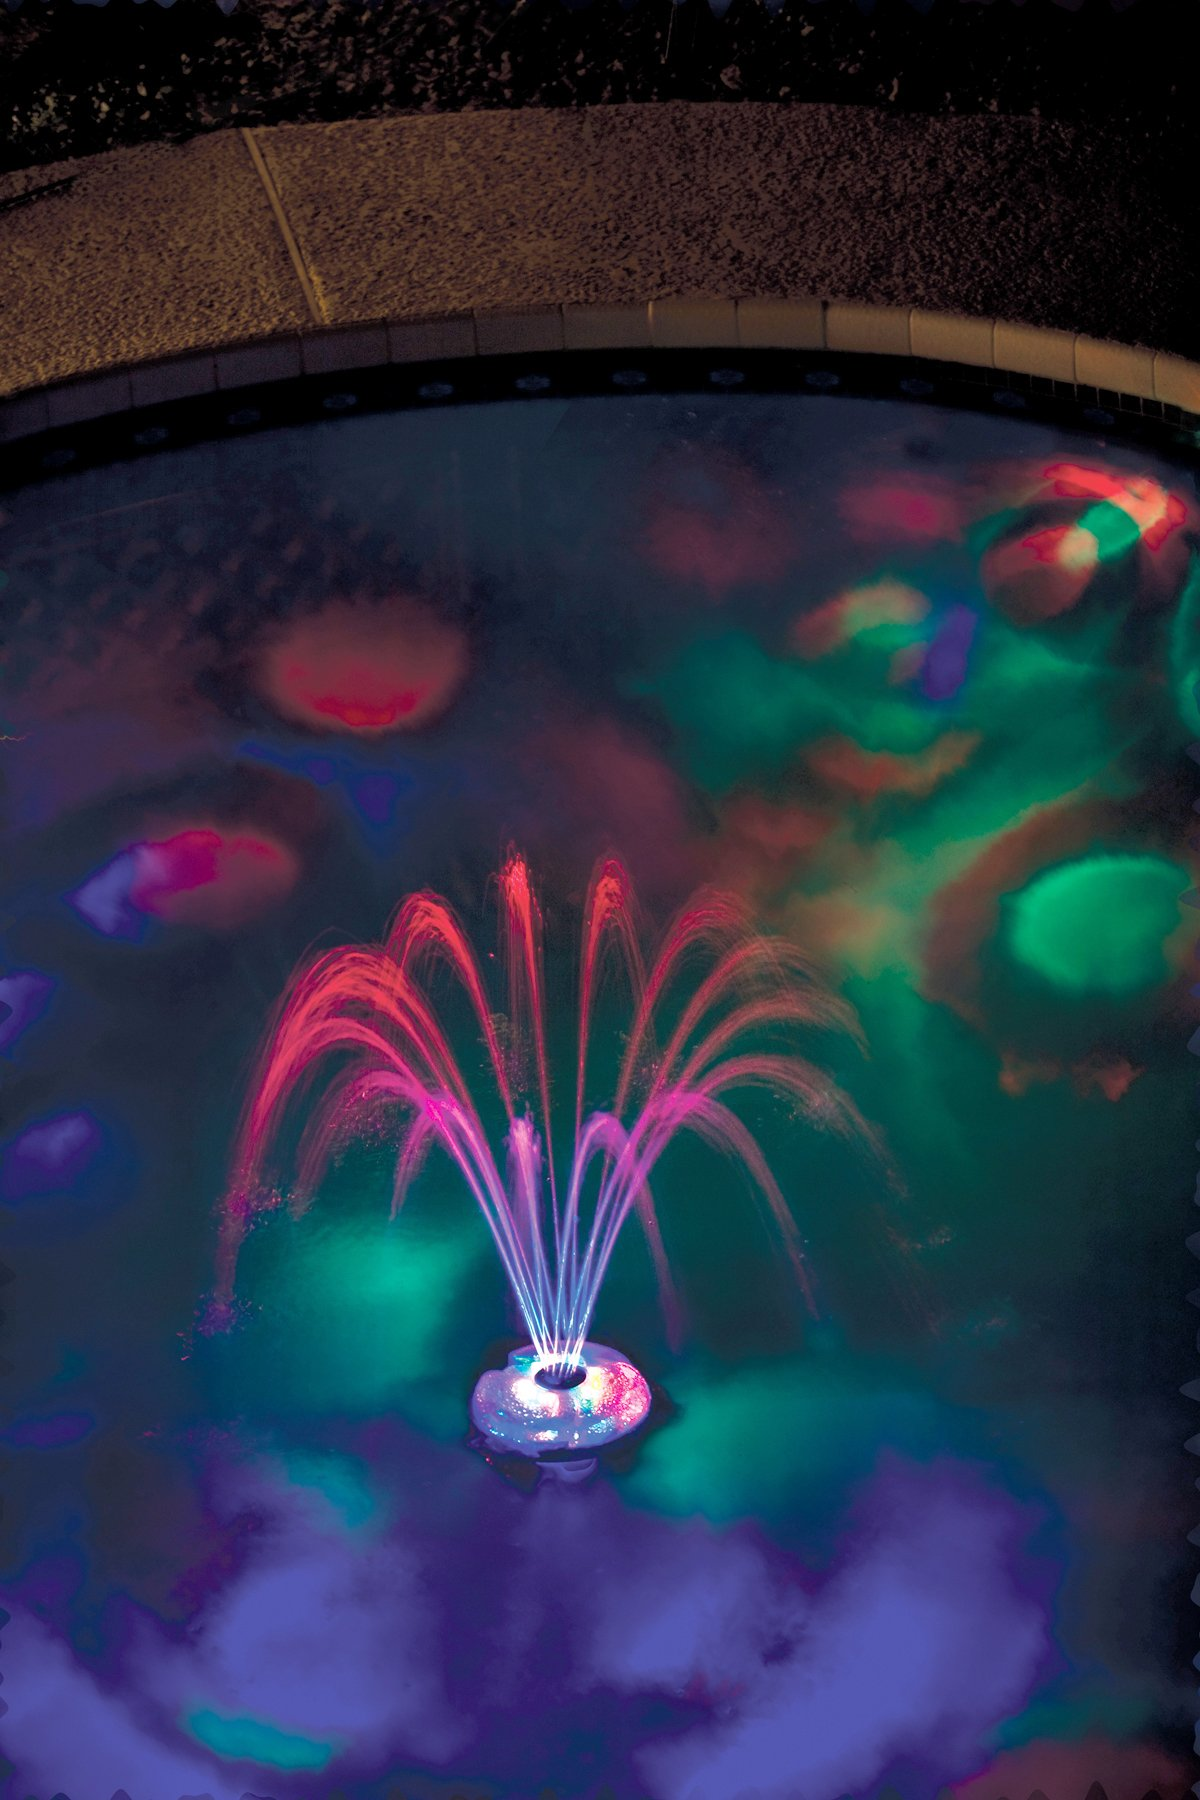 GAME 3567 Fountain Underwater Light Show, 6.9 x 6.9 x 4.4 inches, Blue